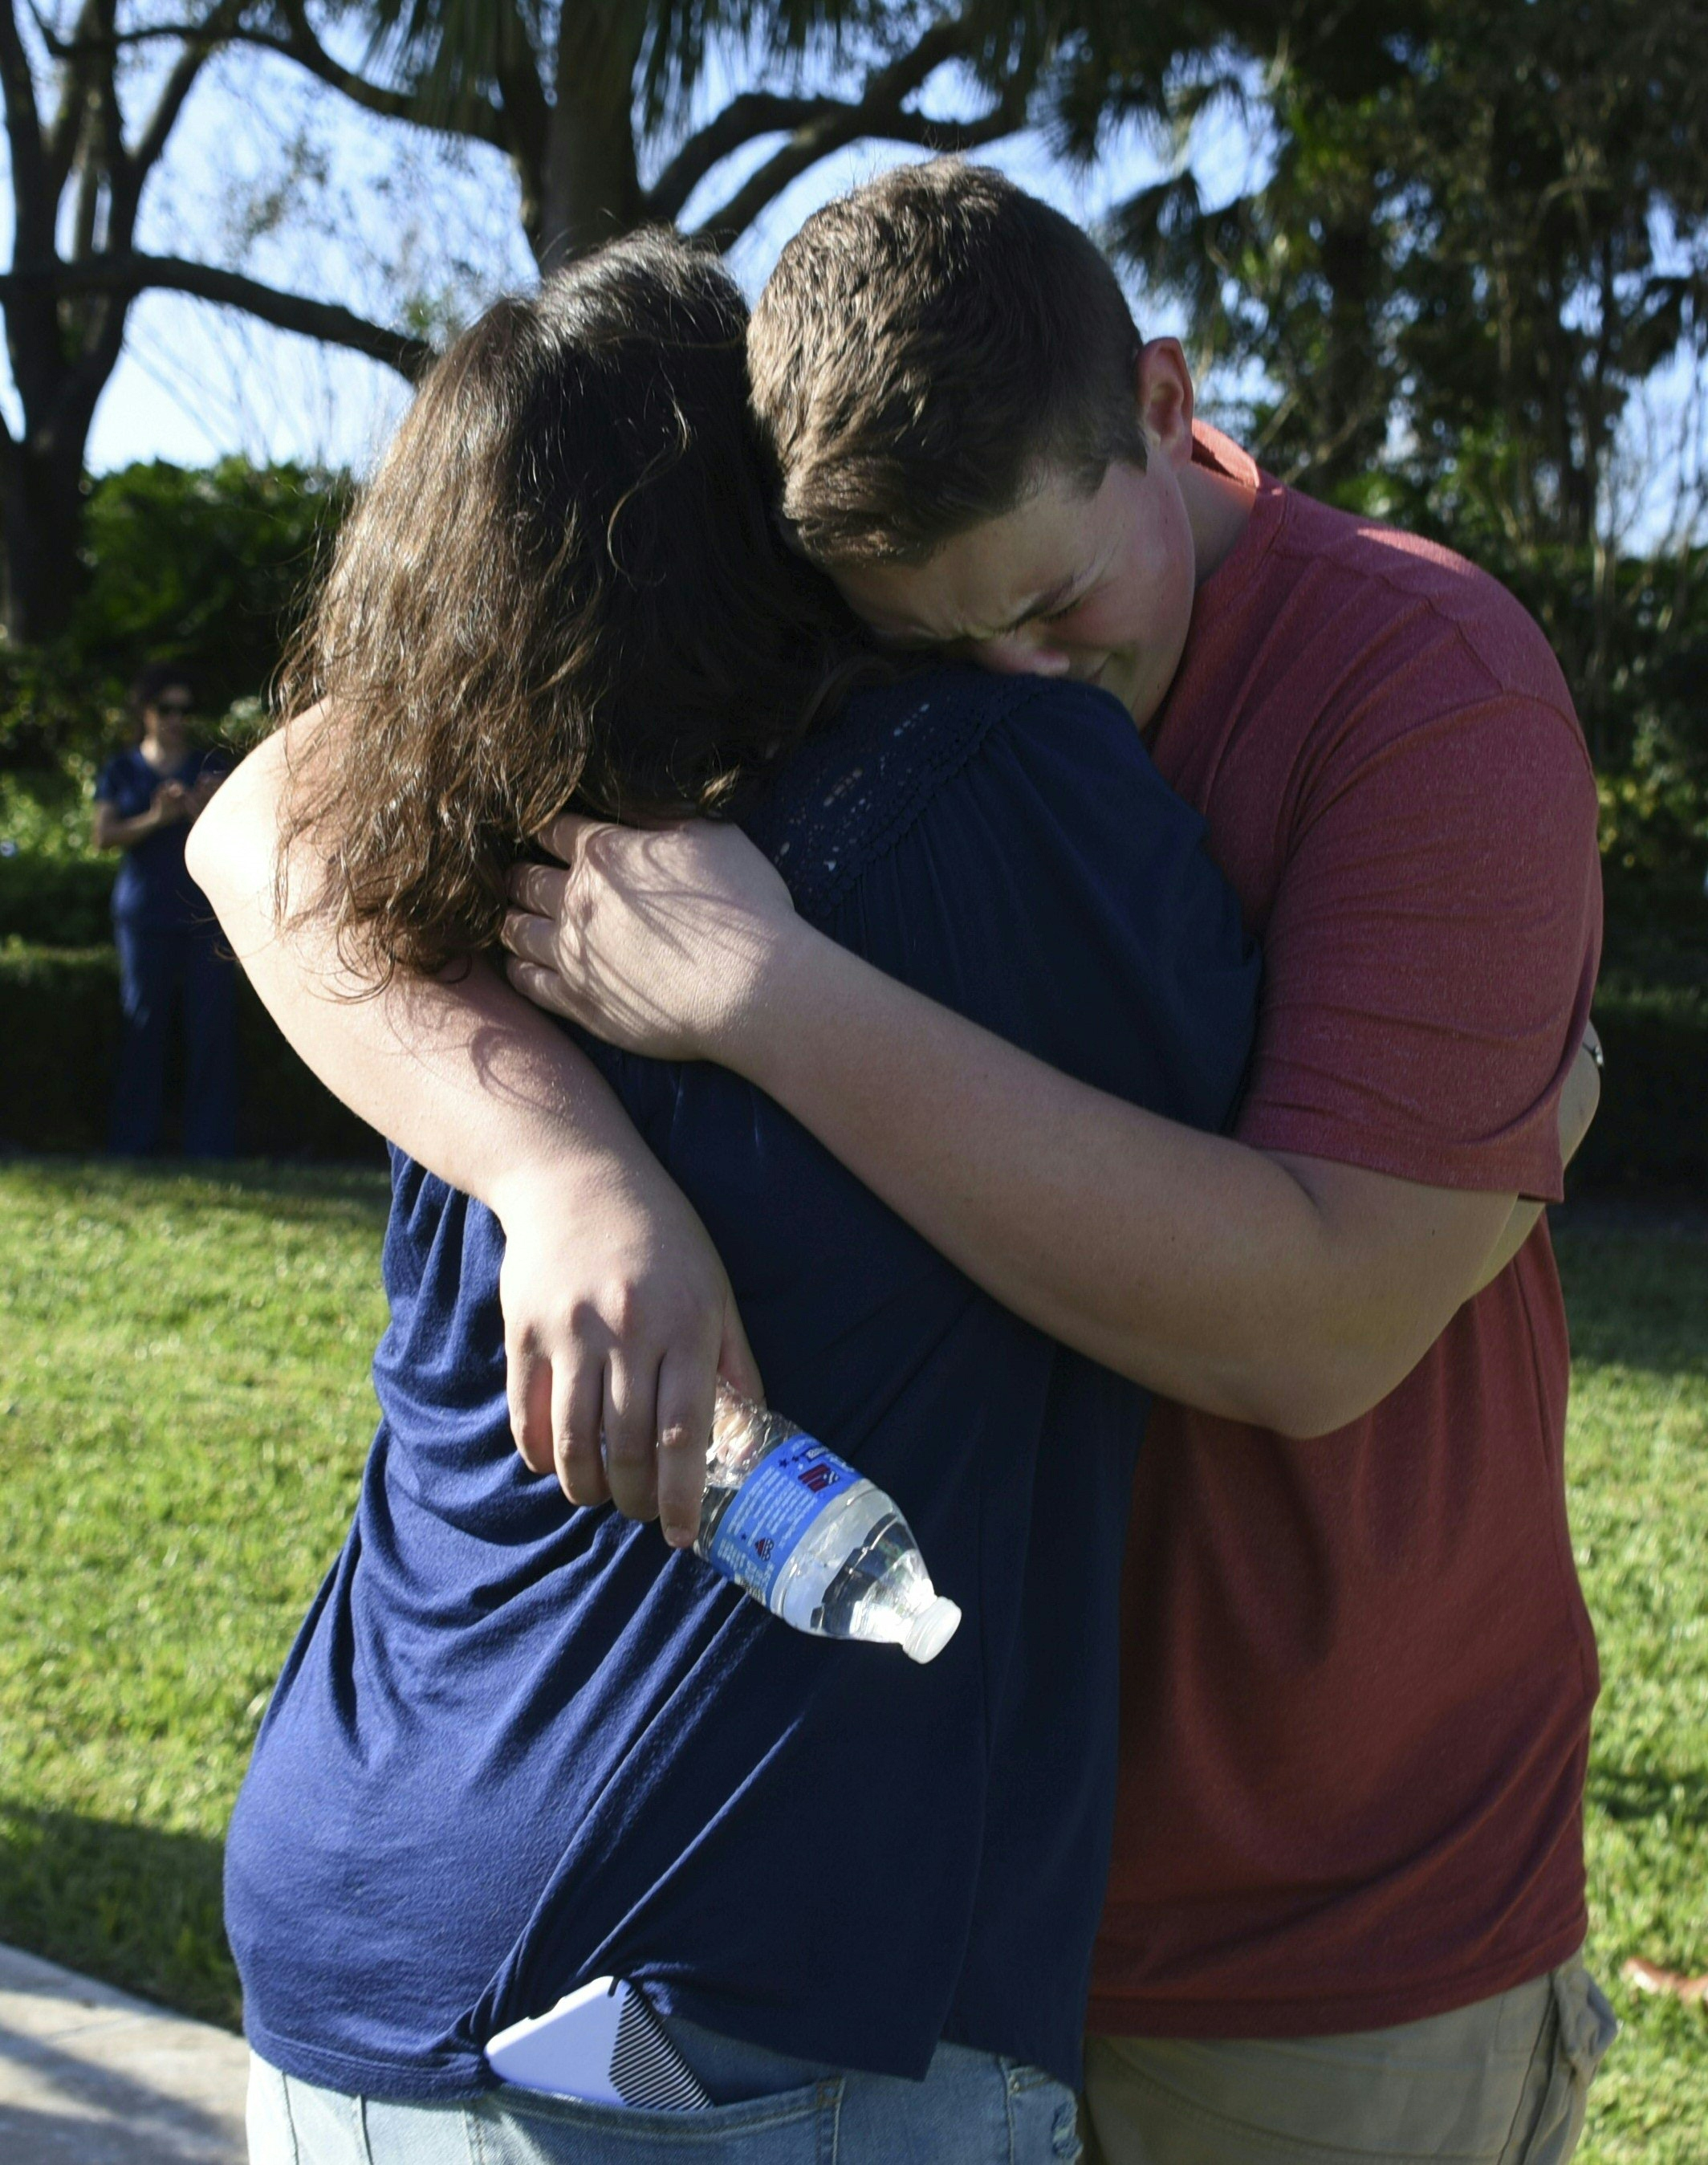 Teen accused in Florida school shooting confessed, authorities say; funerals begin